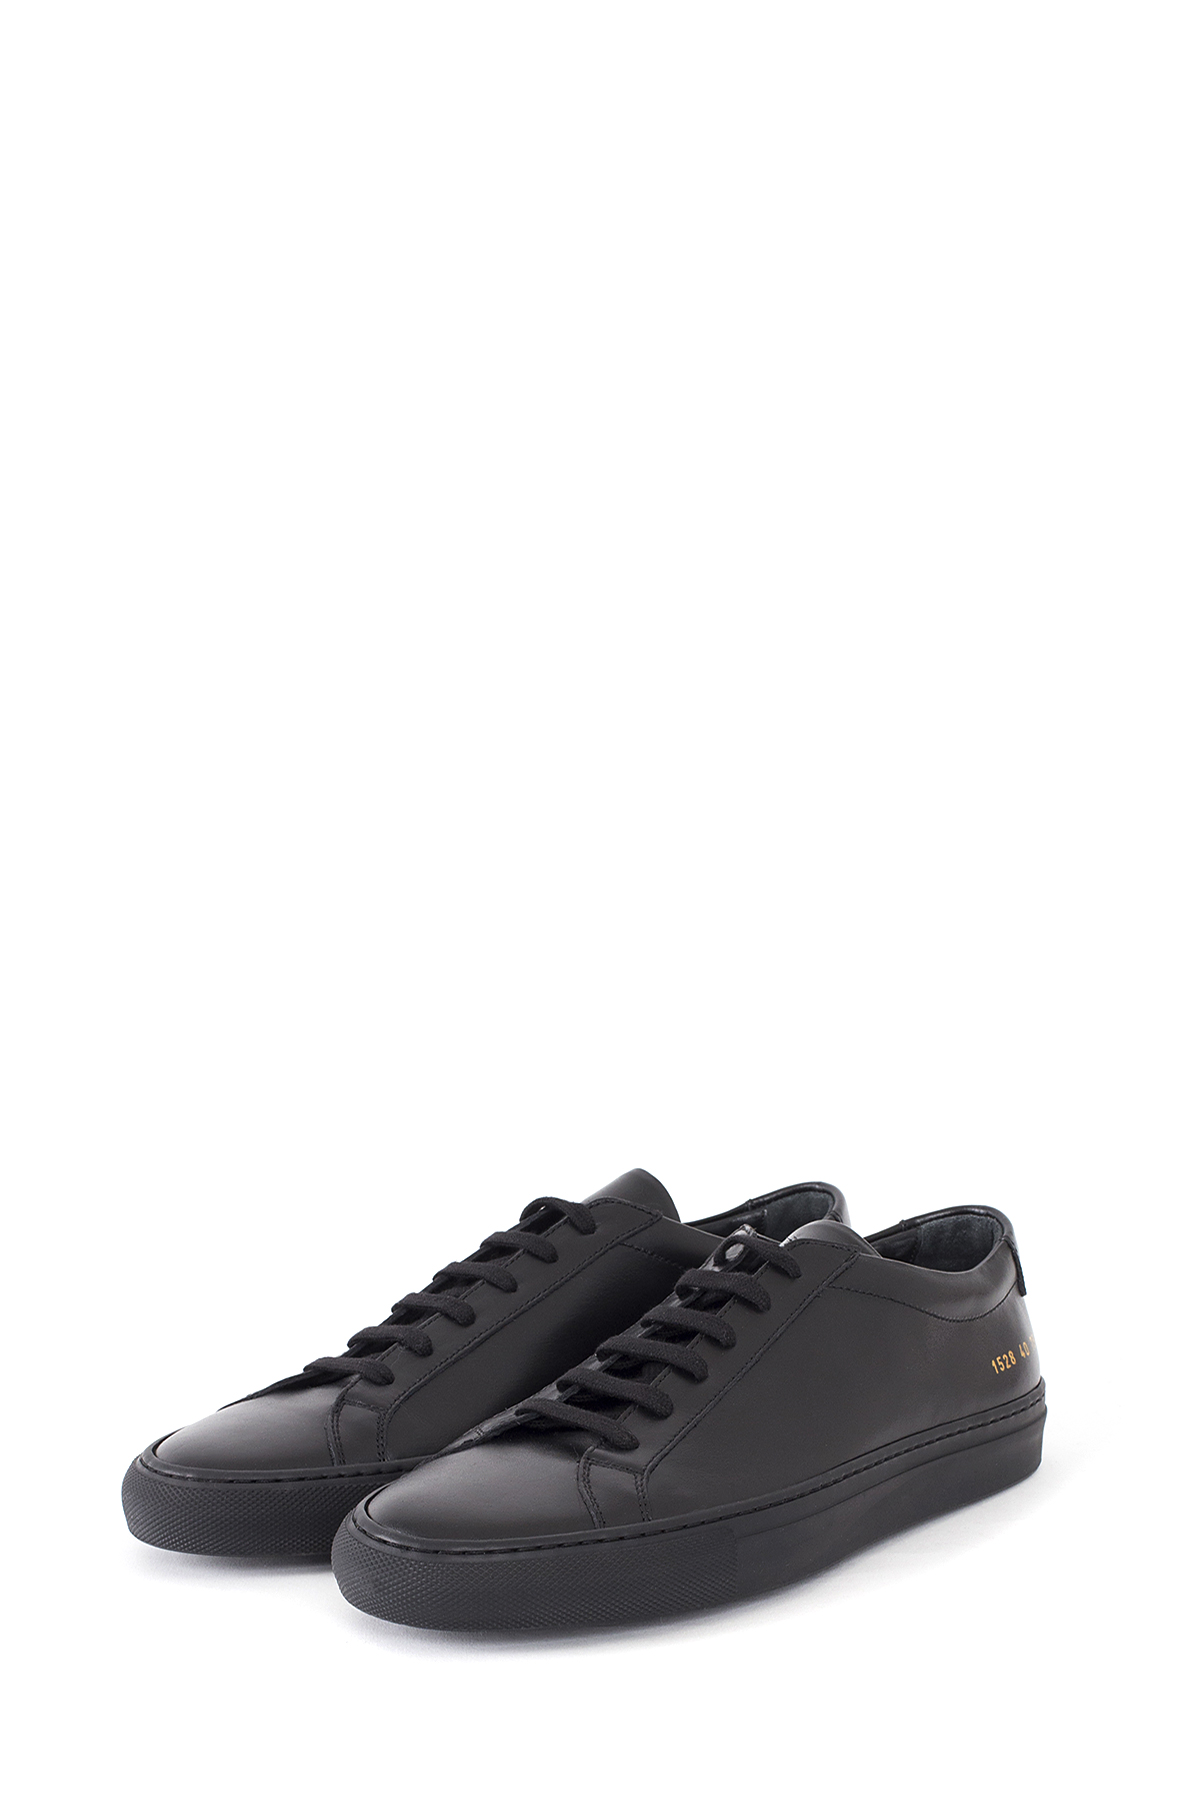 Common Projects : Original Achilles Low (Black)